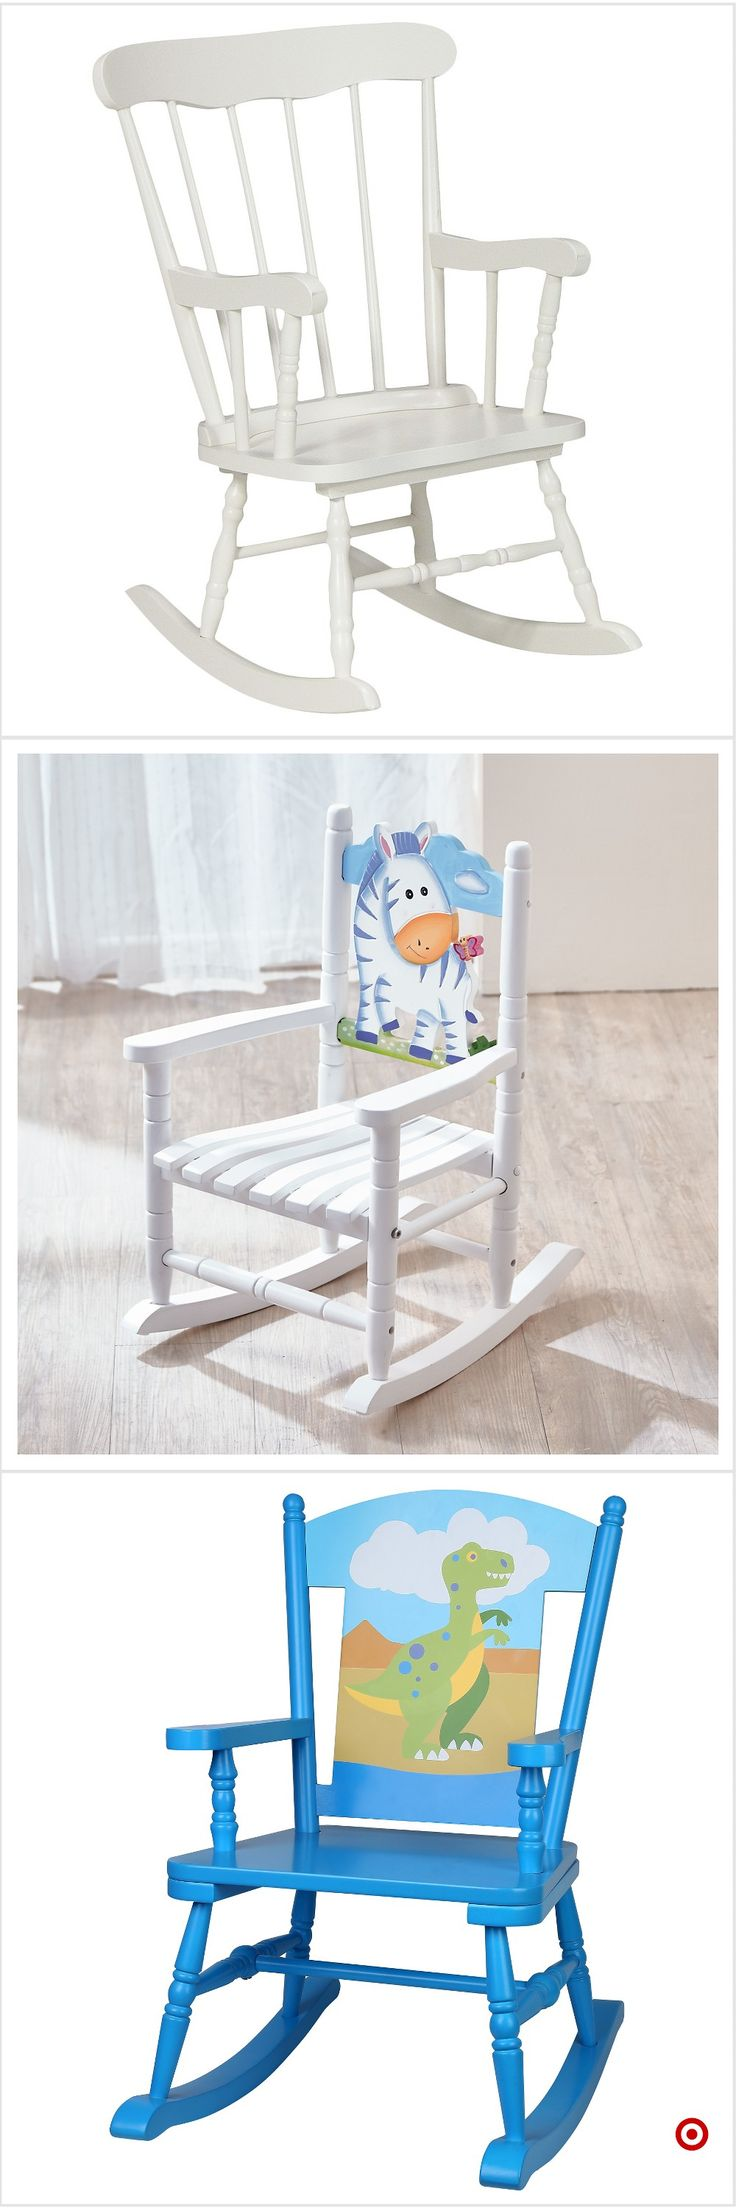 Shop Target for kids rocking chair you will love at great low prices. Free shipping on all orders or free same-day pick-up in store.